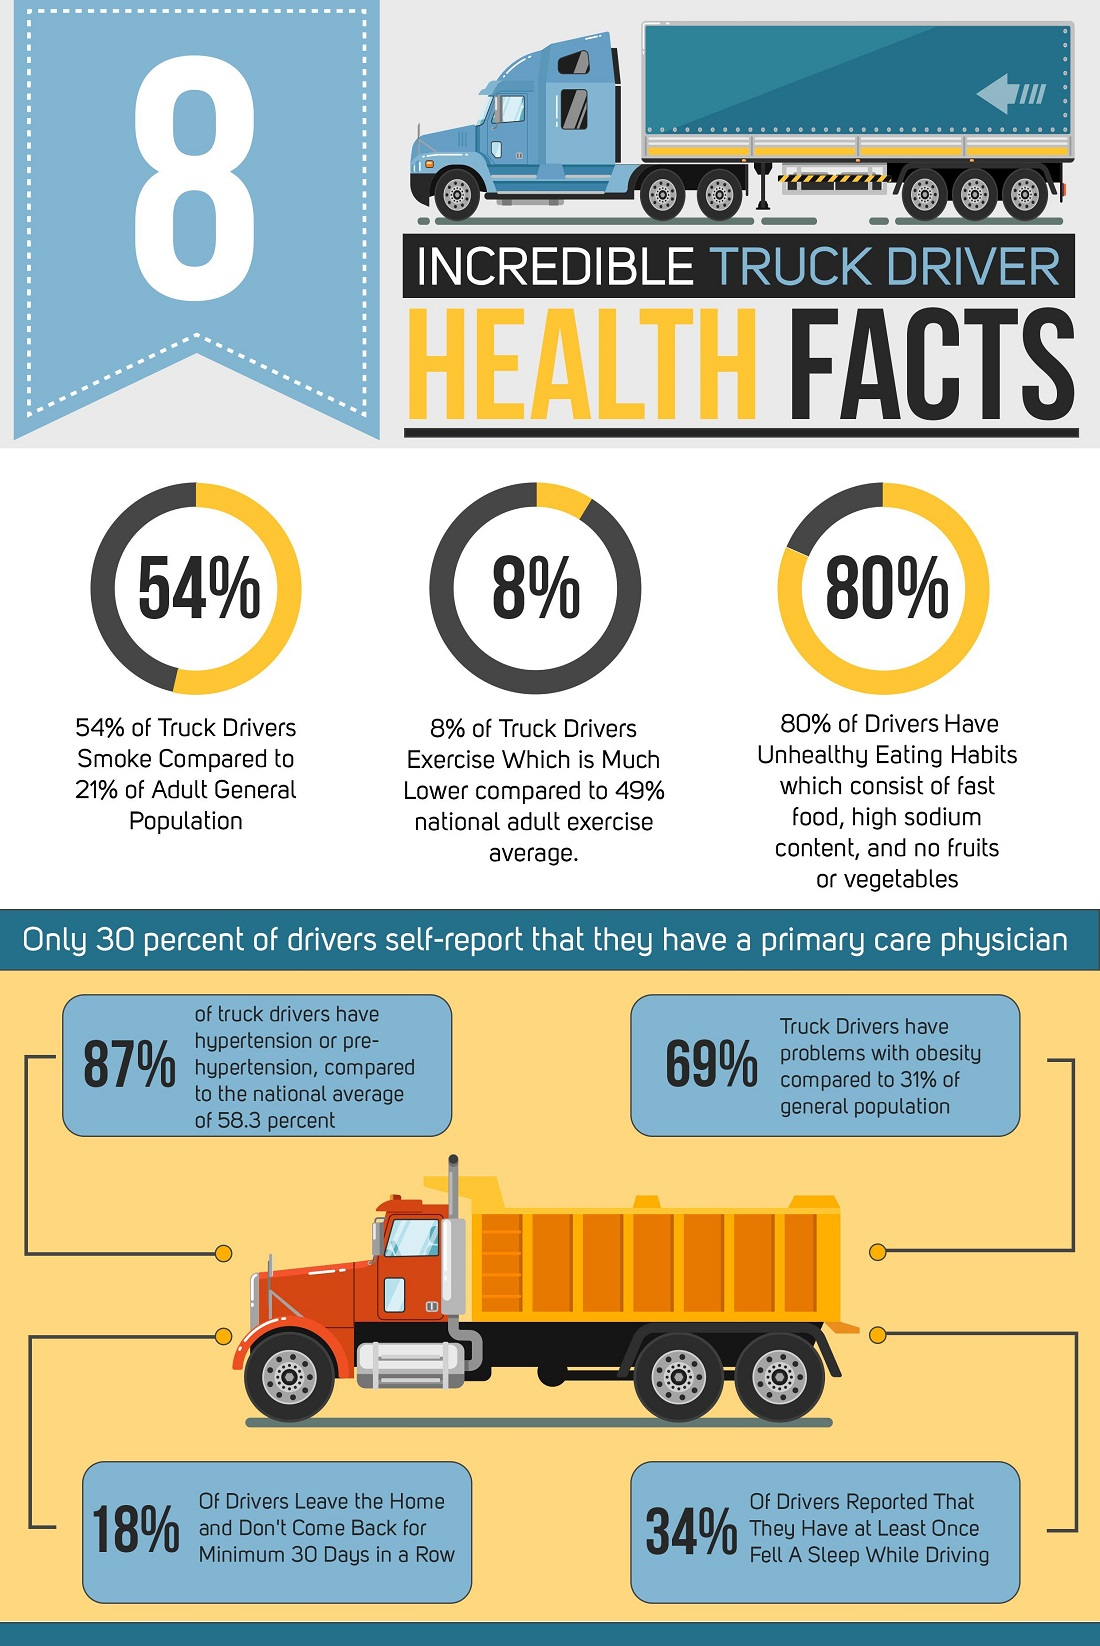 INFOGRAPHIC: 8 Incredible Truck Driver Health Facts